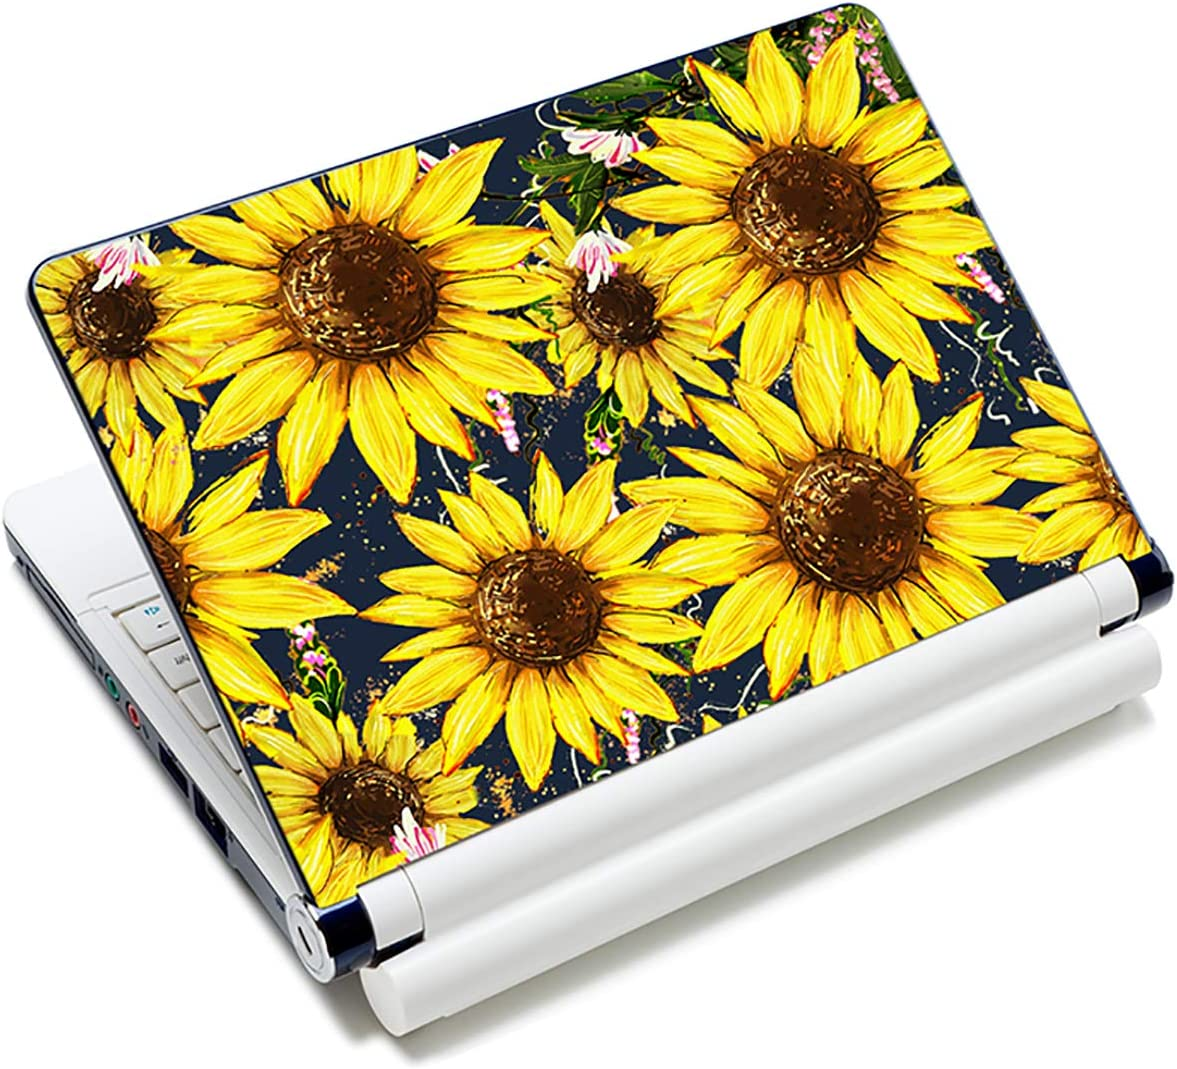 AUPET Personalized Laptop Skin Sticker Decal,12 13 13.3 14 15 15.4 15.6 inch Laptop Skin Sticker Cover Art Decal Protector Notebook PC (Sunflowers)